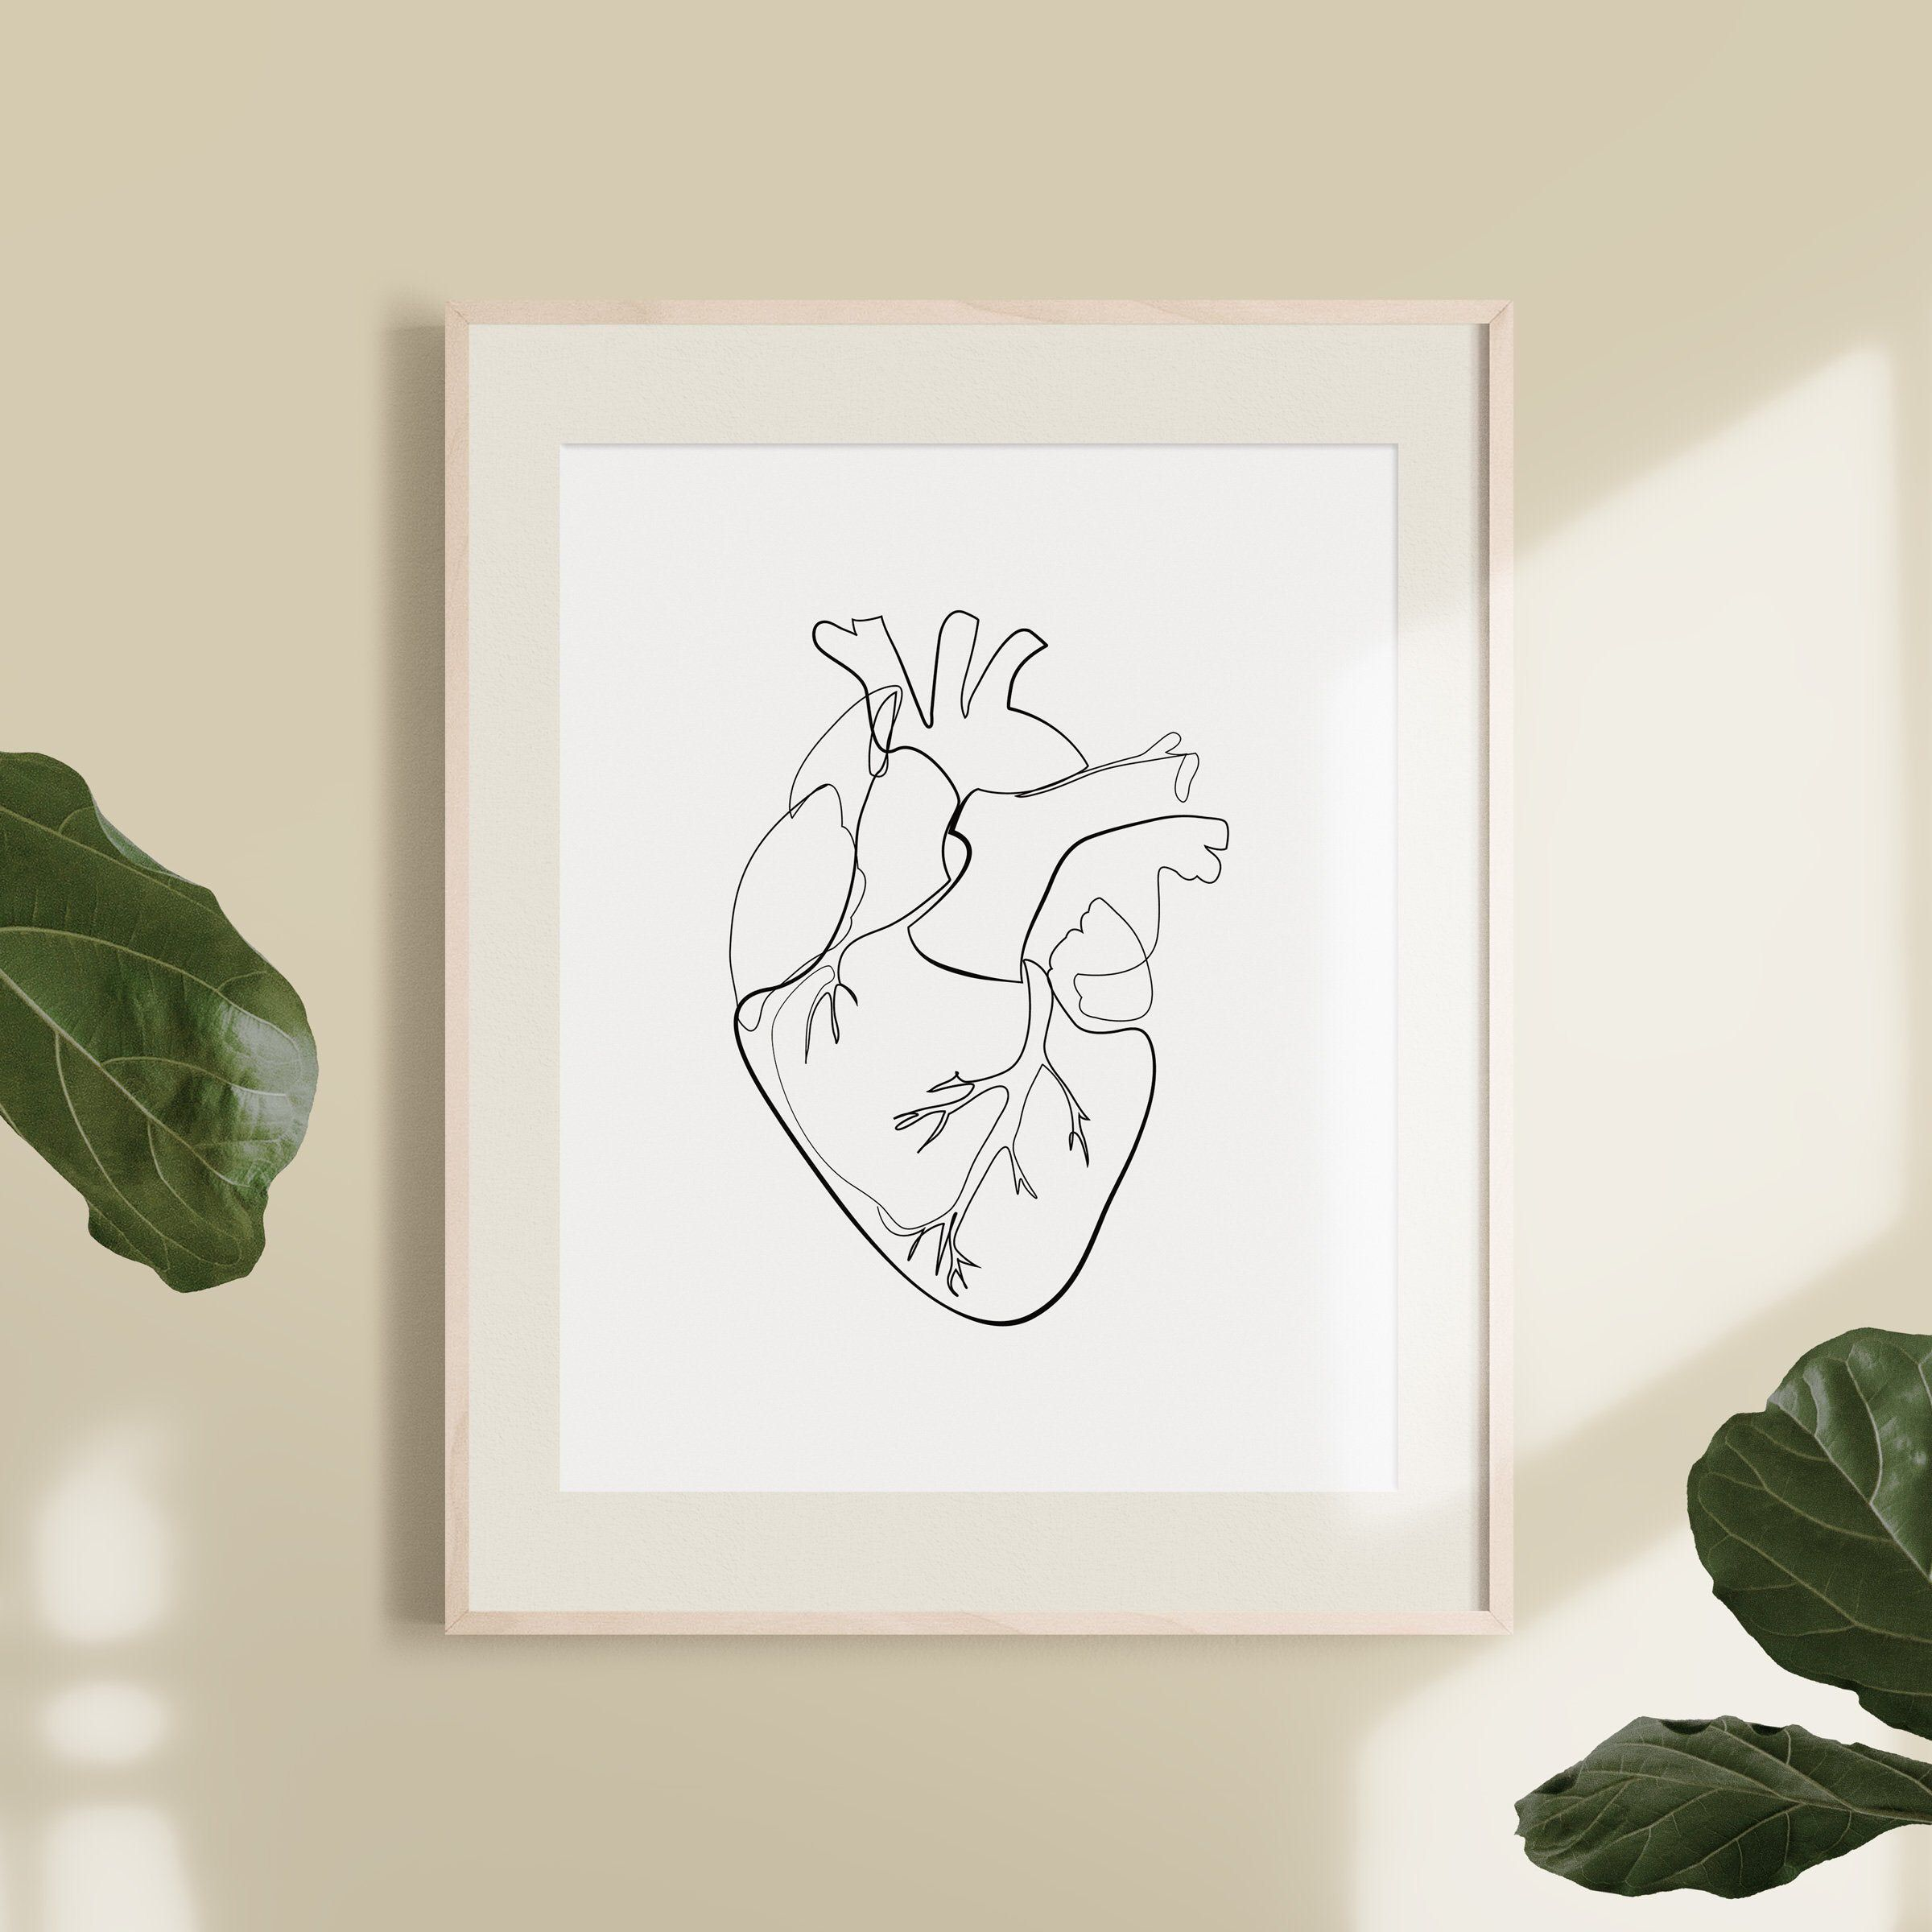 Anatomical Heart Drawing Illustration Abstract Health | Etsy